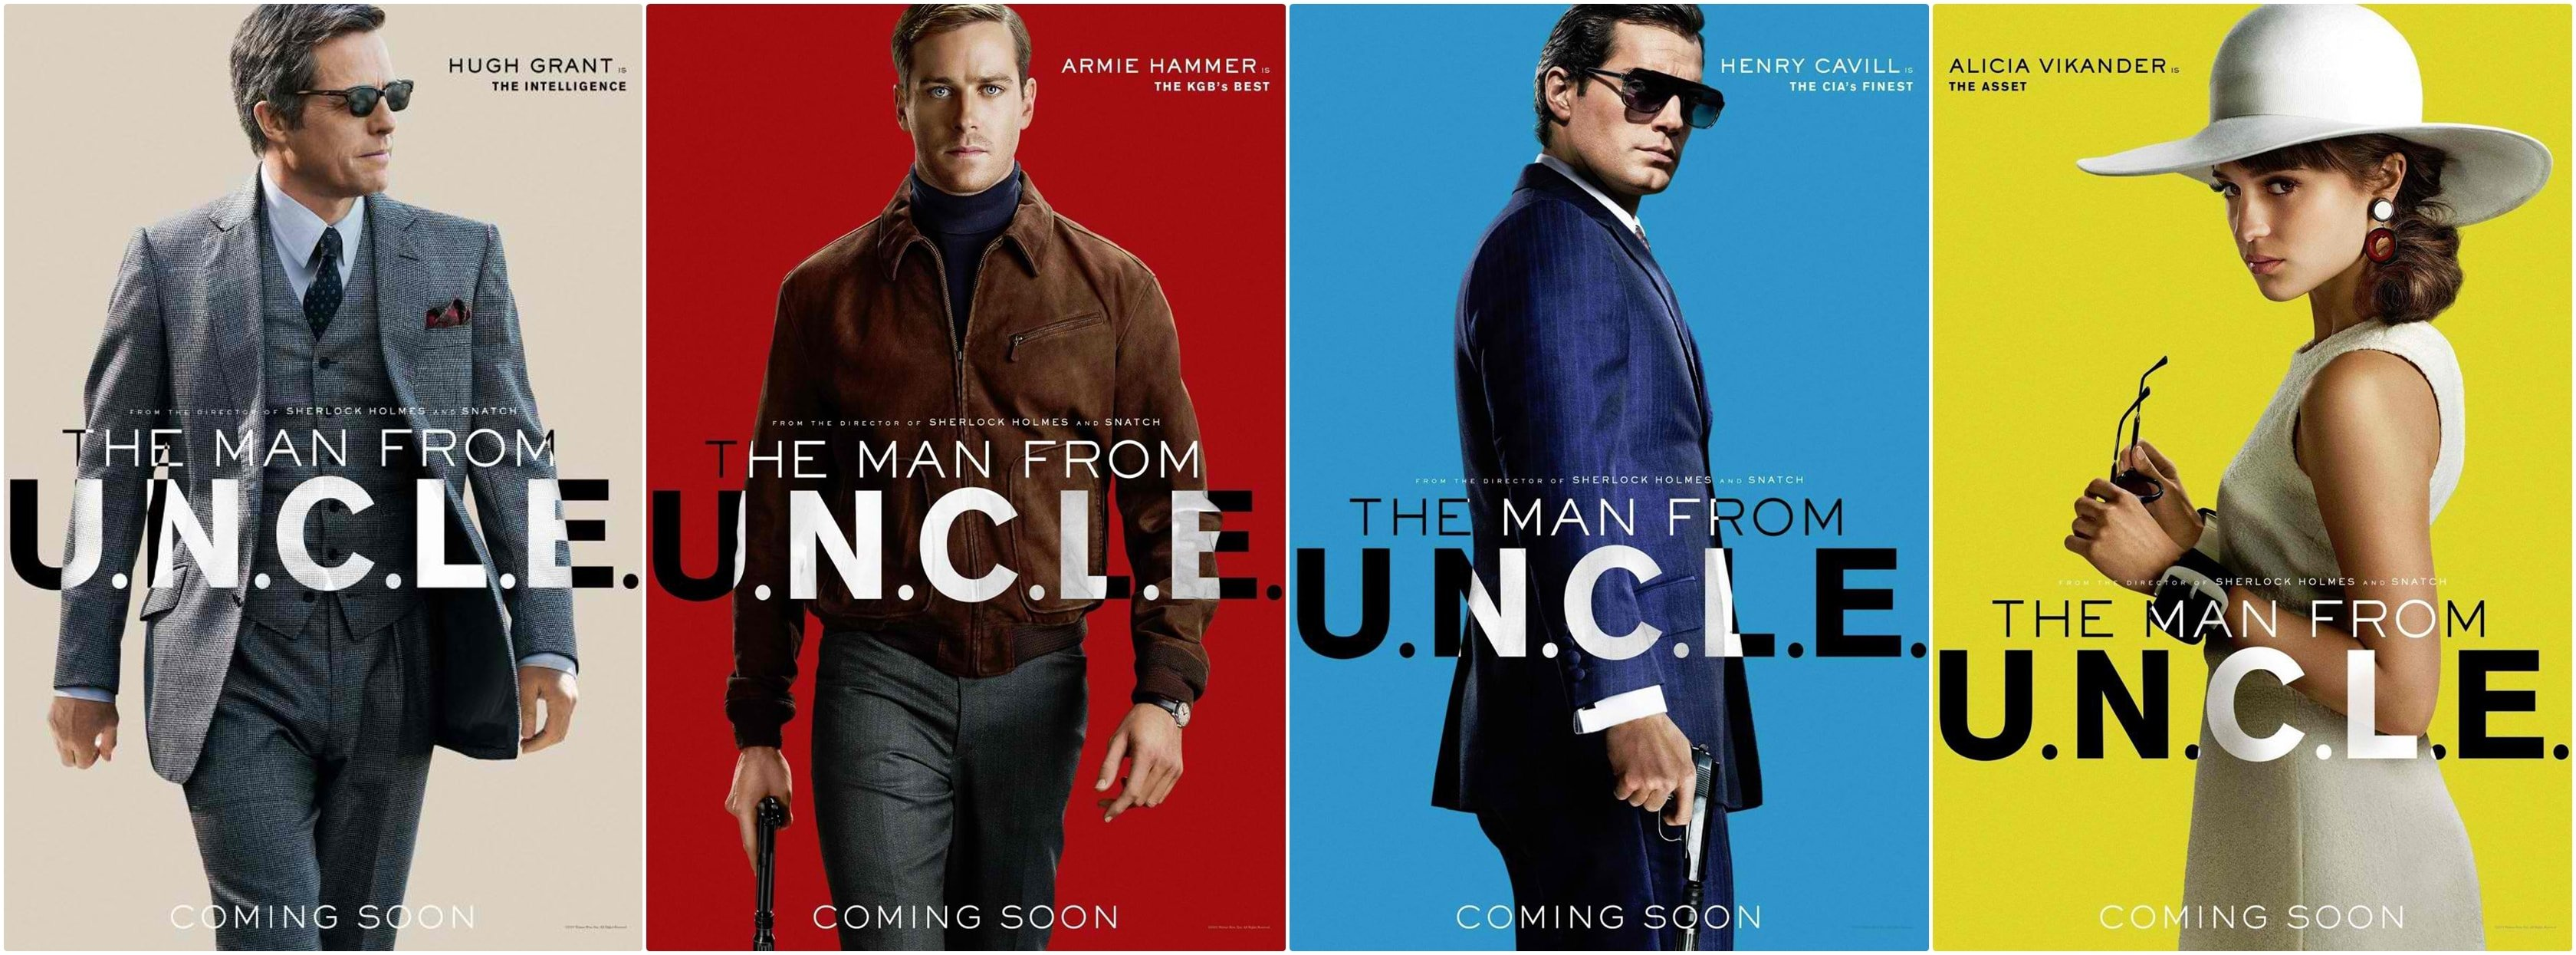 The Man from UNCLE HD Desktop Wallpapers 3360x1245